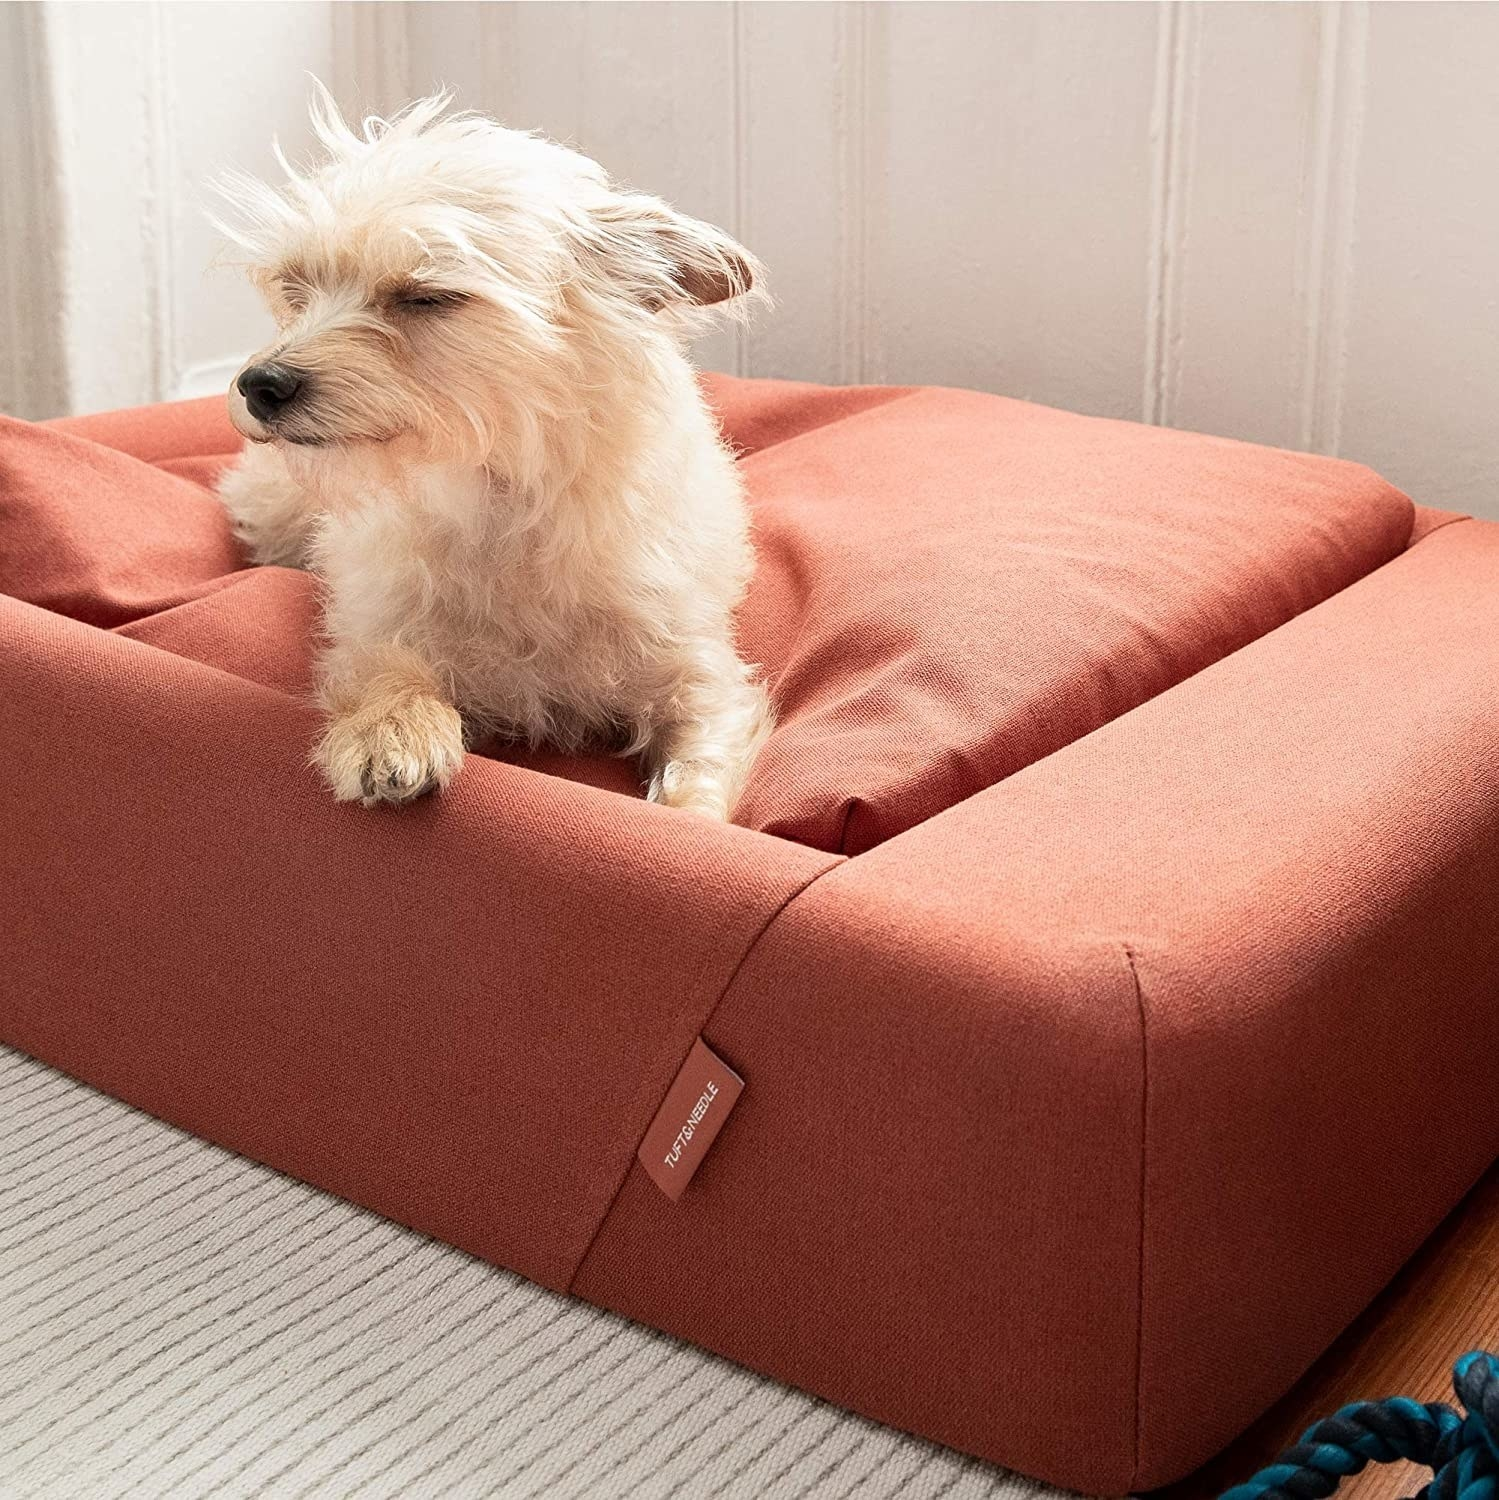 a dog in the burnt orange rectangular dog bed